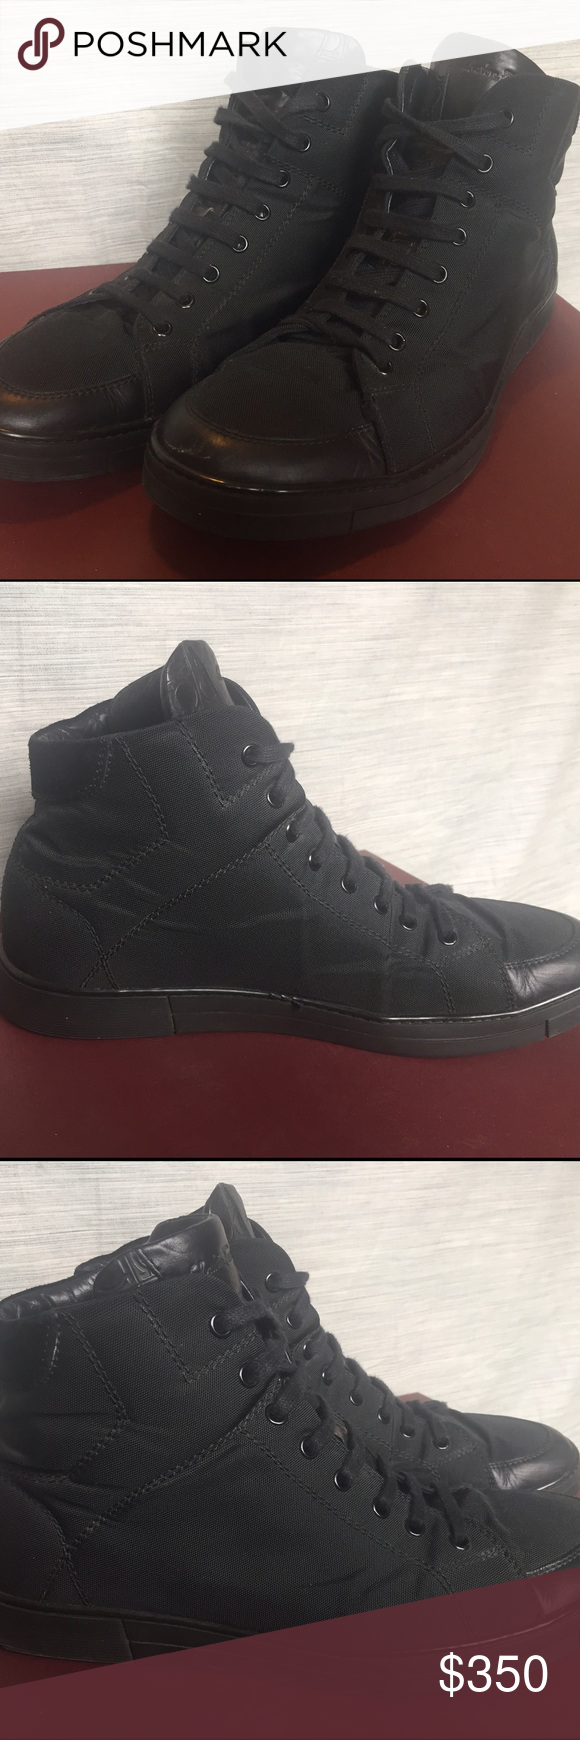 Salvatore Ferragamo High Top Sneaker Men's Salvatore Ferragamo High Top Sneaker. Size 9. Pre-owned, gently used. Lace up closure, extended tongue. Made in Italy. Great condition. Salvatore Ferragamo Shoes Sneakers